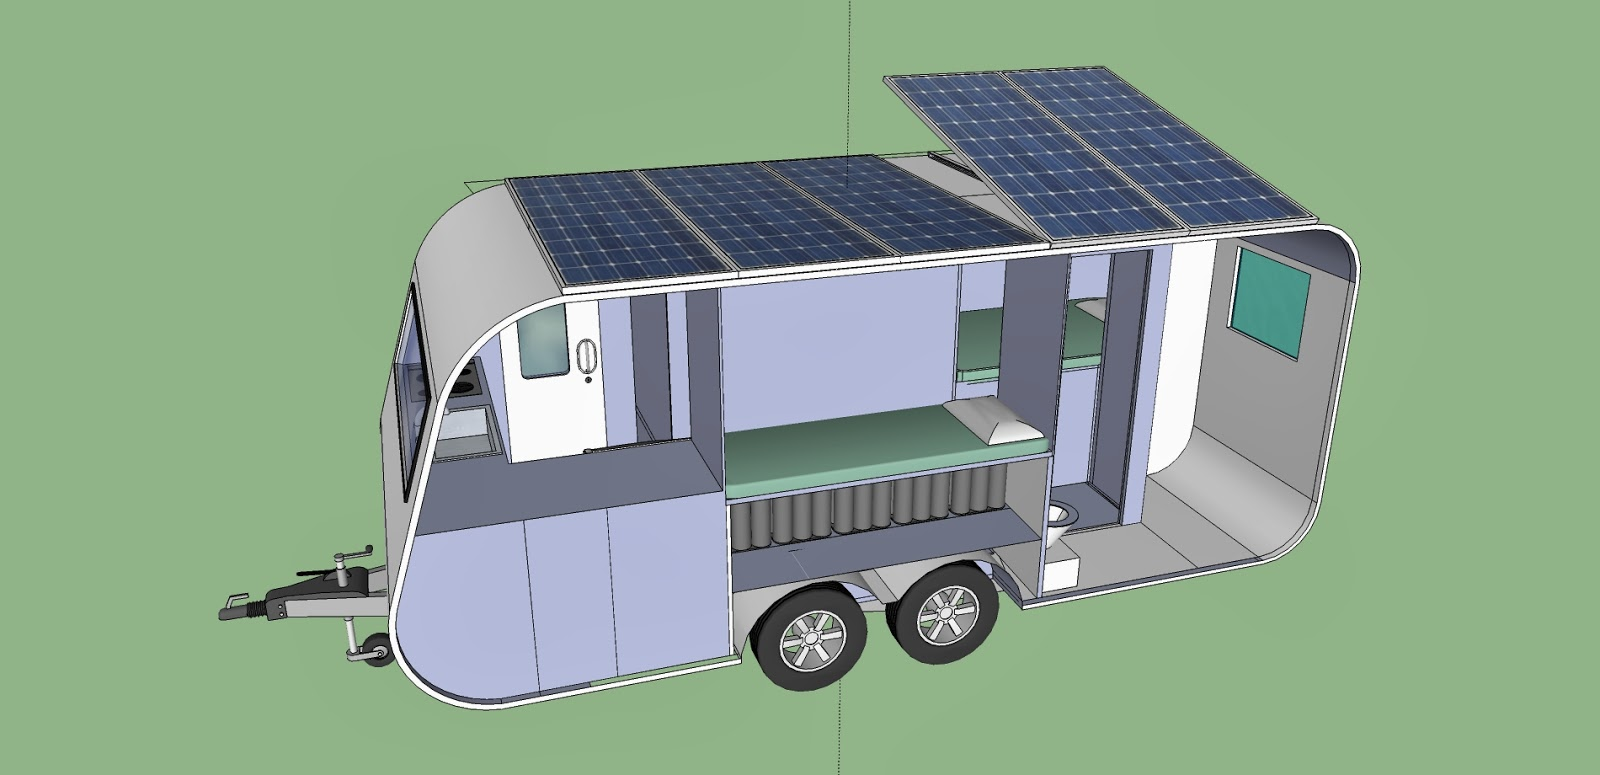 I have done the drawings with Google Sketchup  a very easy and free 3D design  software  To draw the caravan I used some parts downloaded from Google. Francesco s Short Circuits